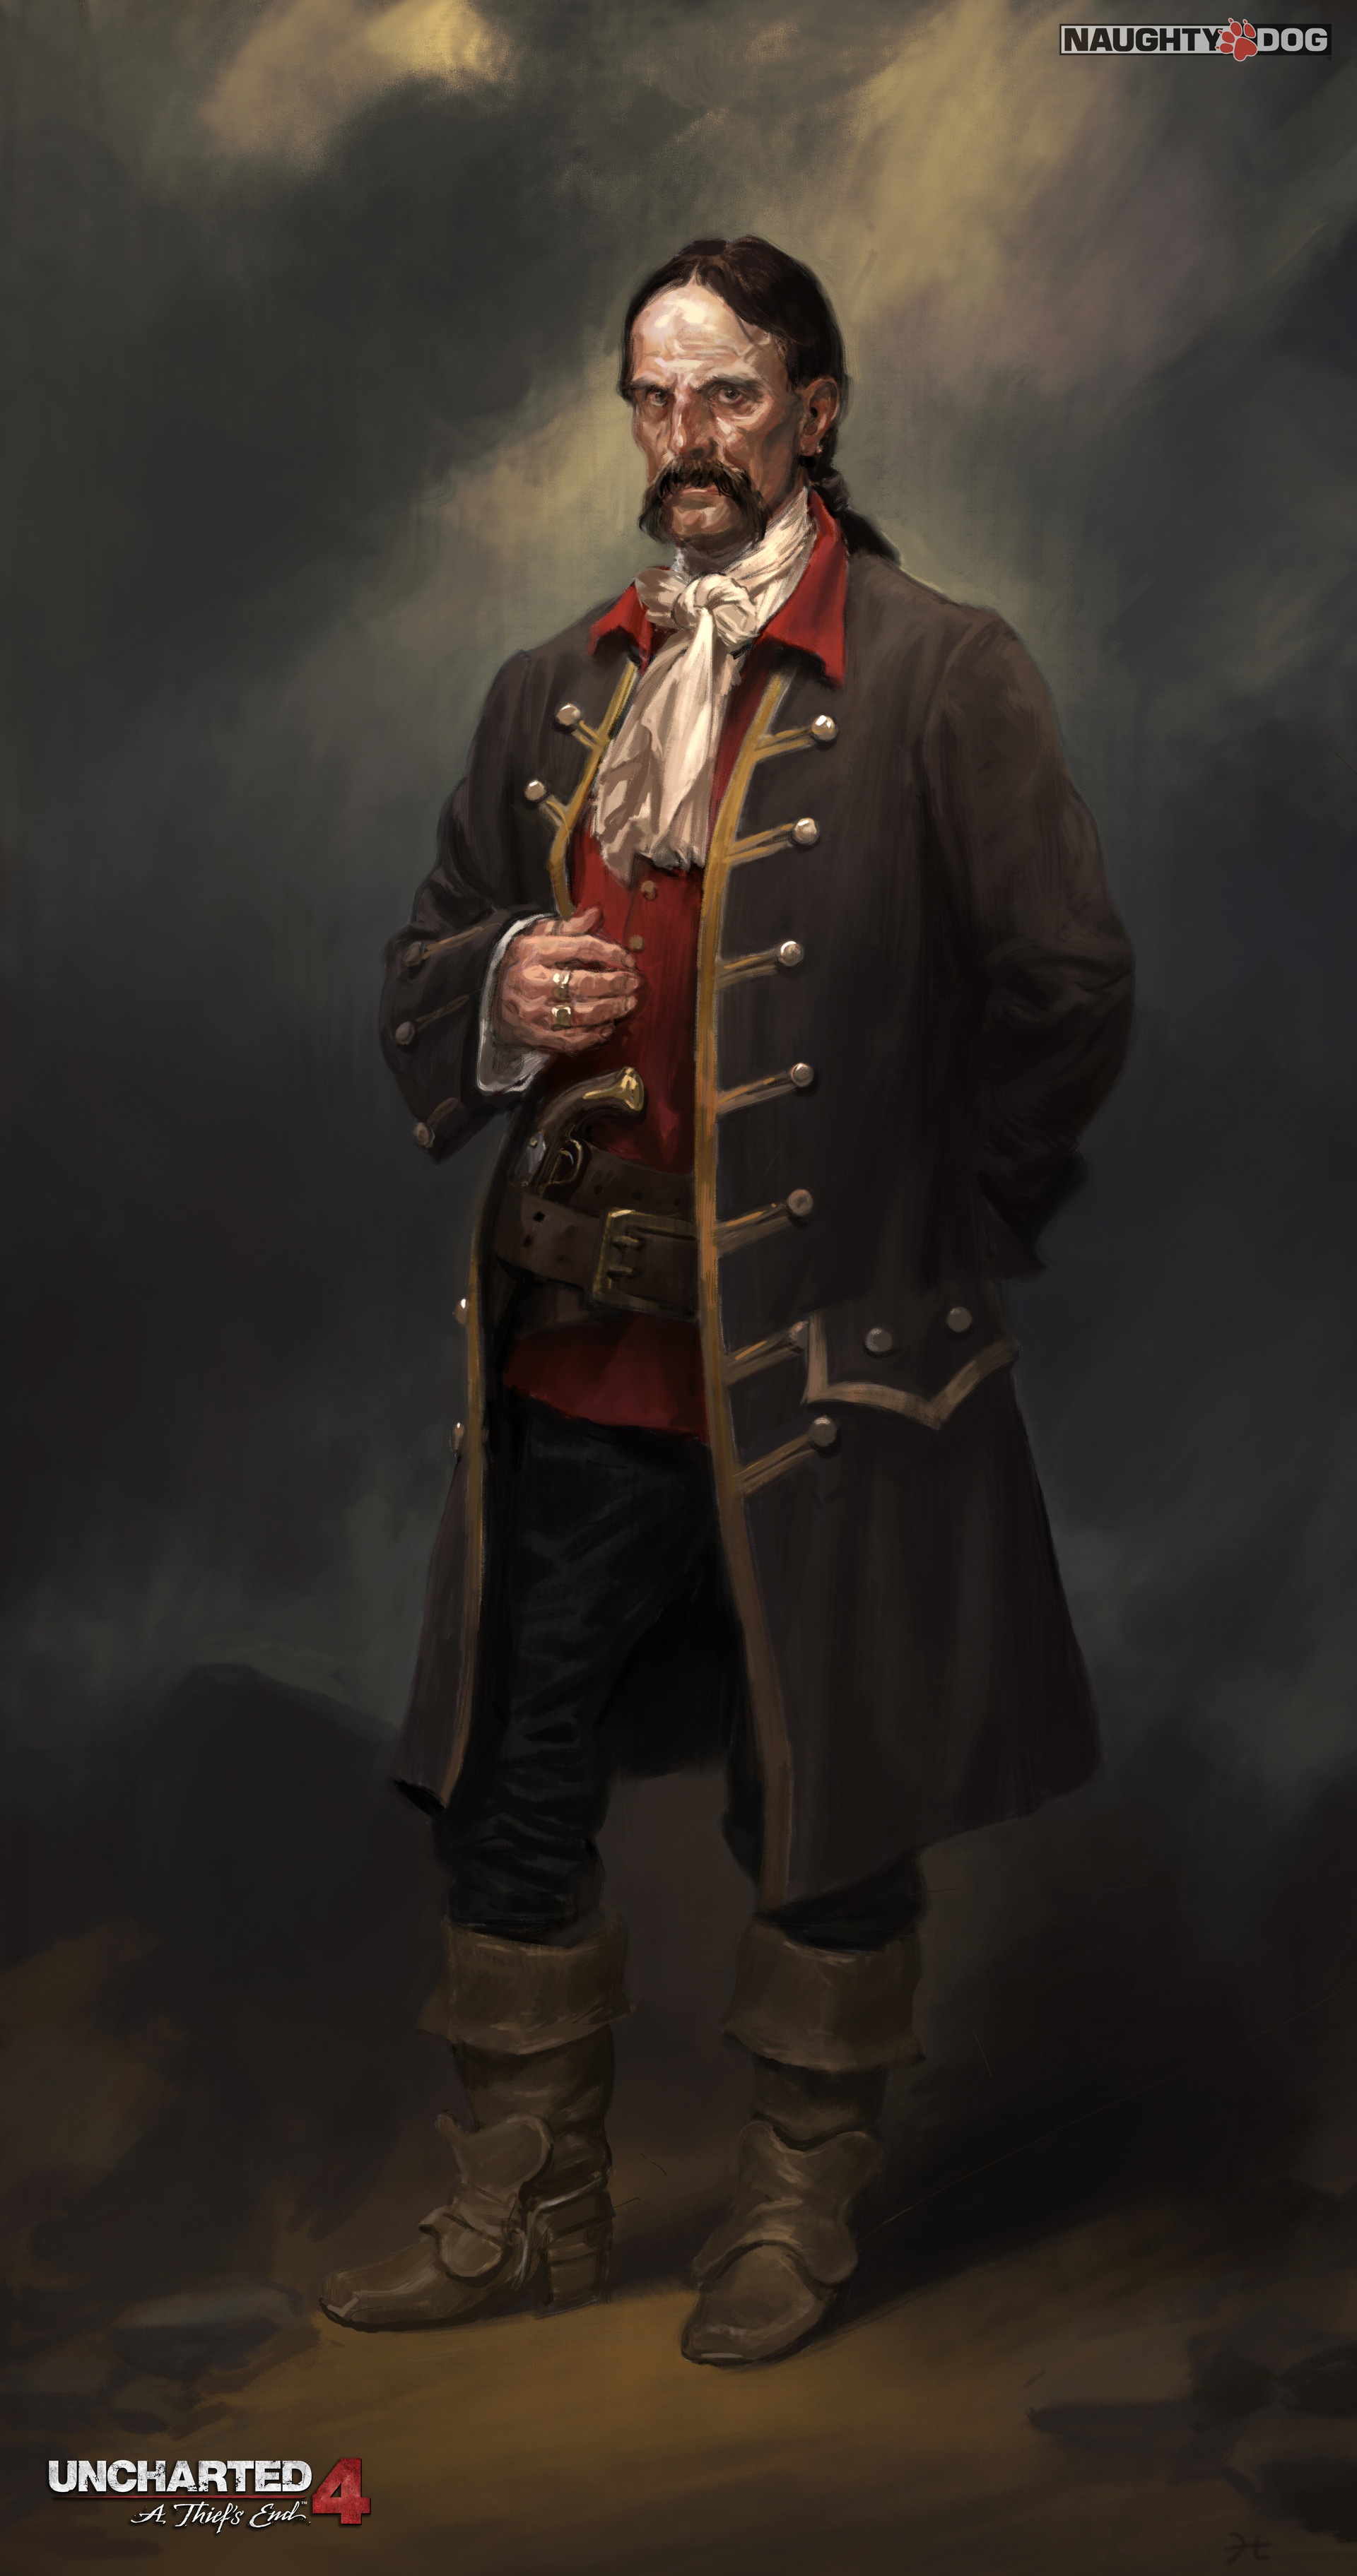 Henry Avery Quotes : henry, avery, quotes, Photo:, Henry, Avery, Quotes, Henry,, Pirate,, Pirates, Download, Jooinn